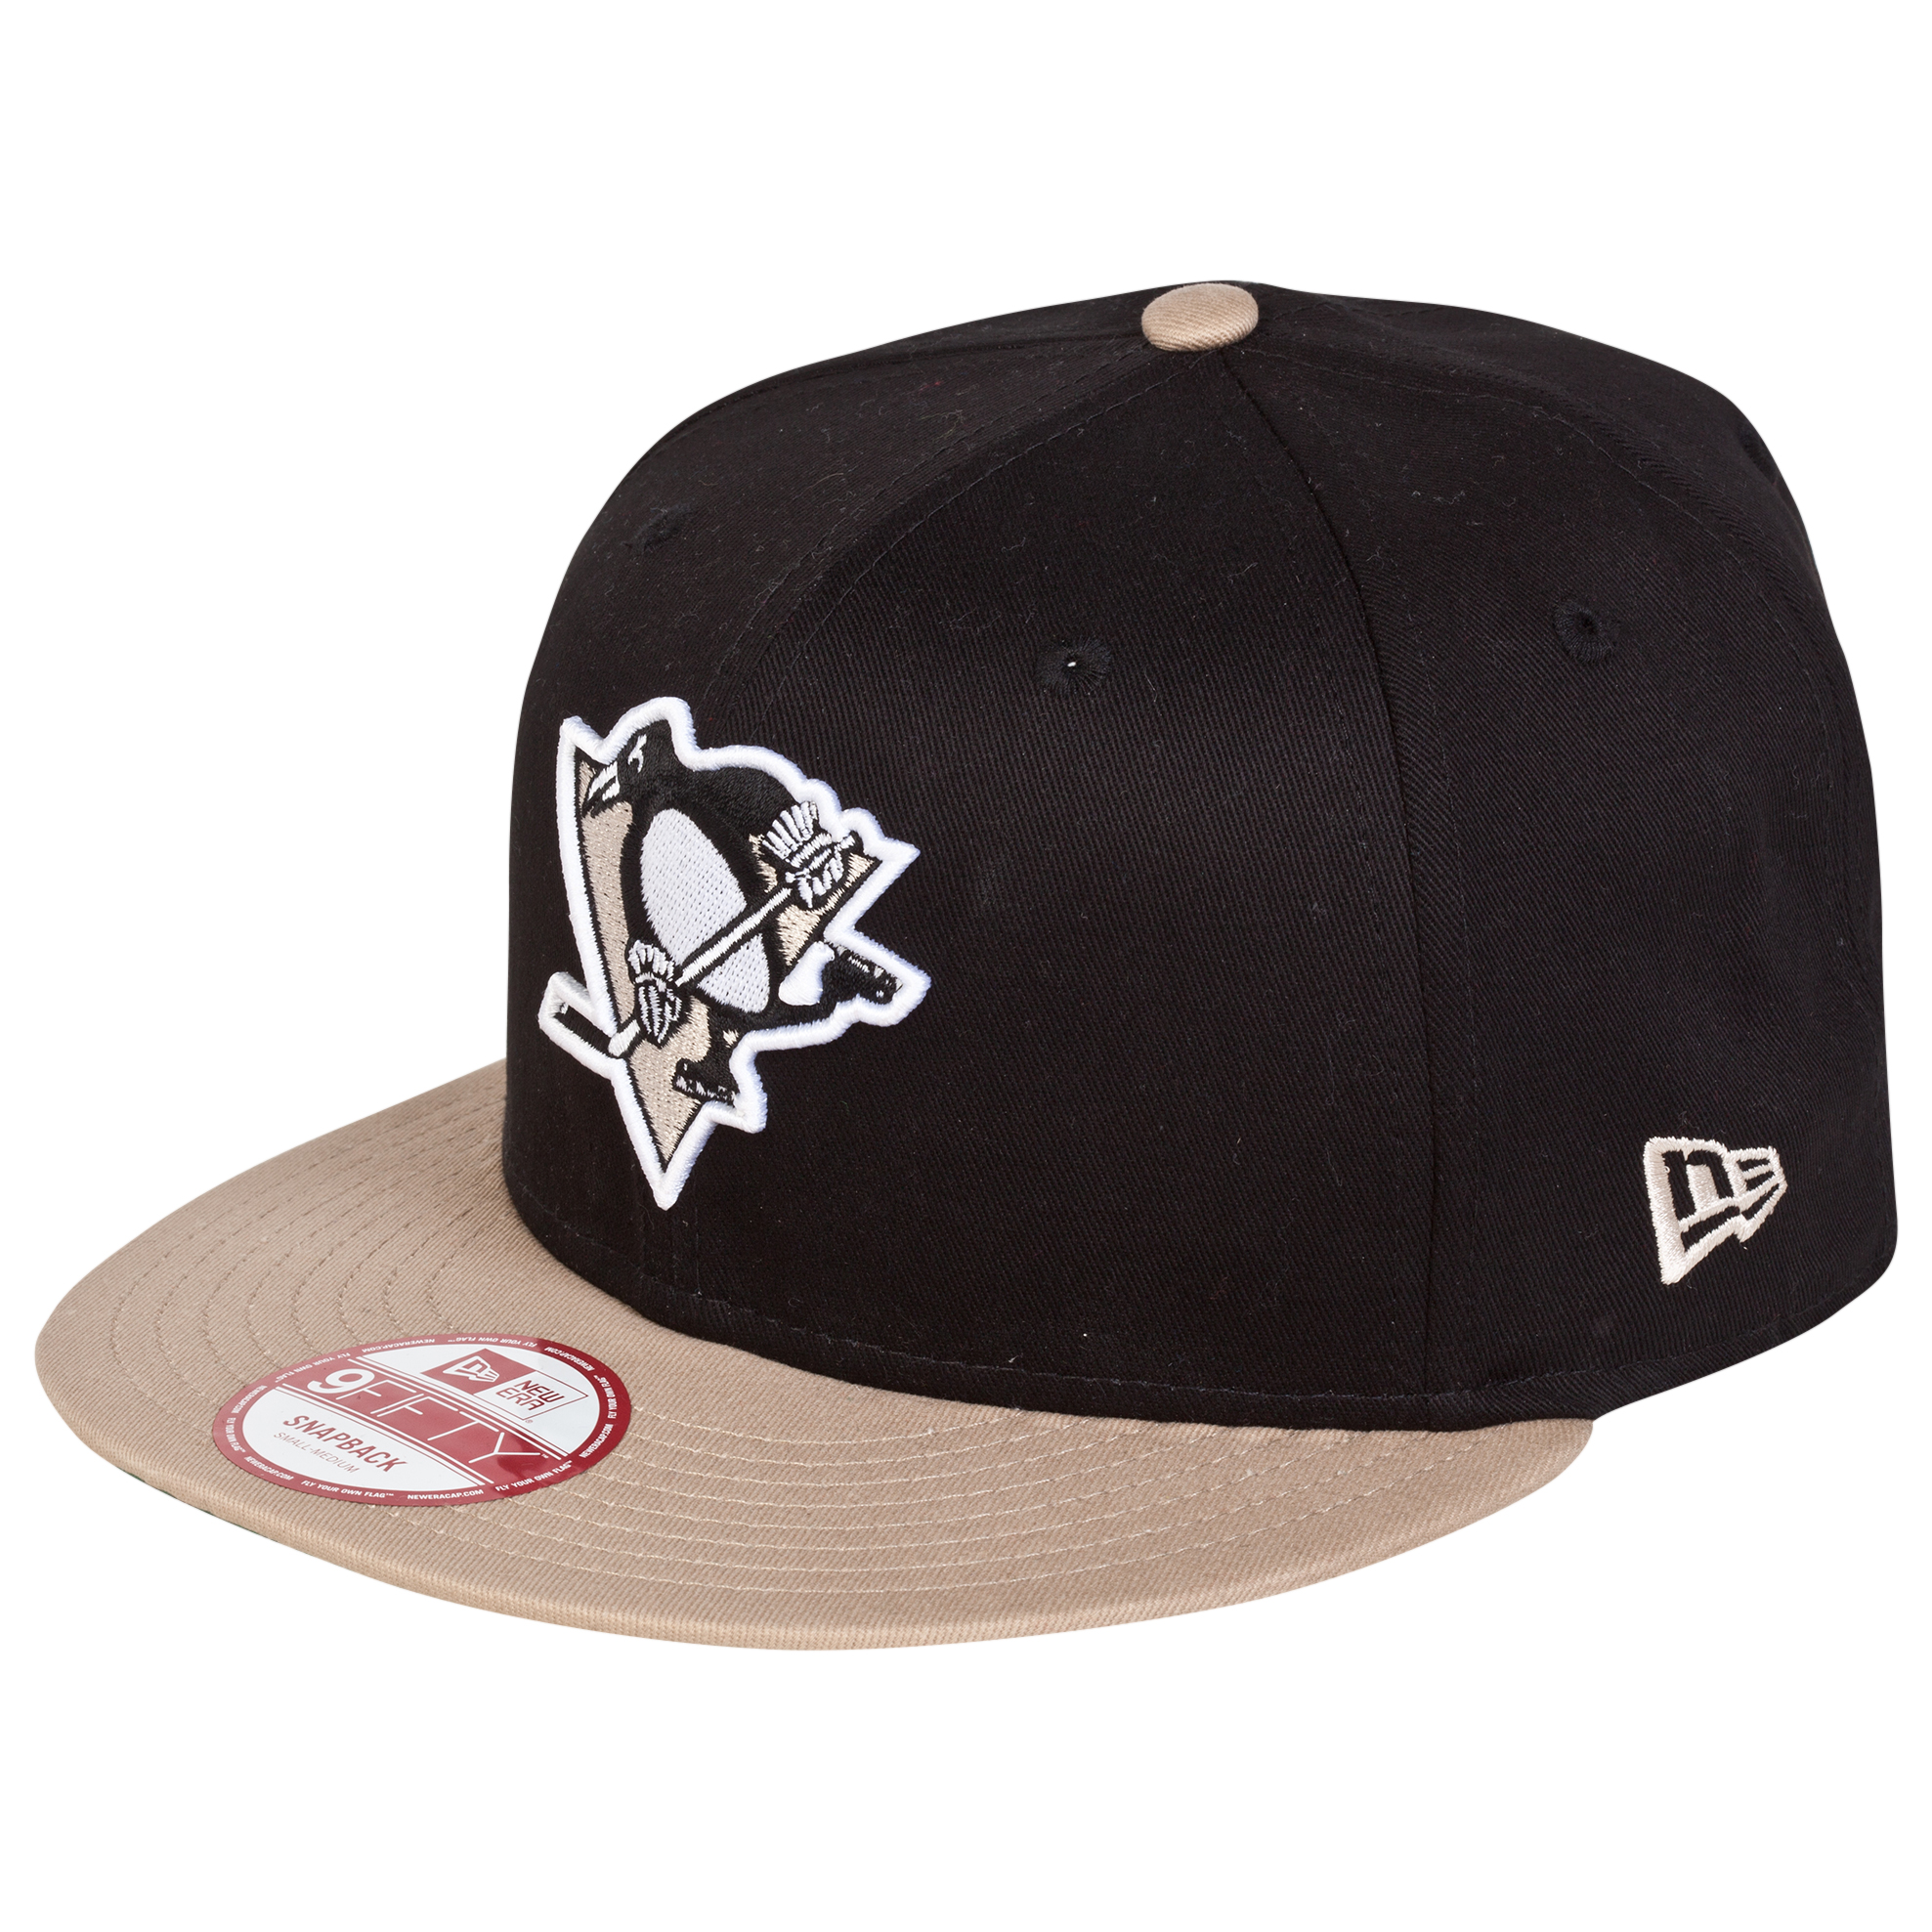 Pittsburgh Penguins New Era 9FIFTY Snapback Cap